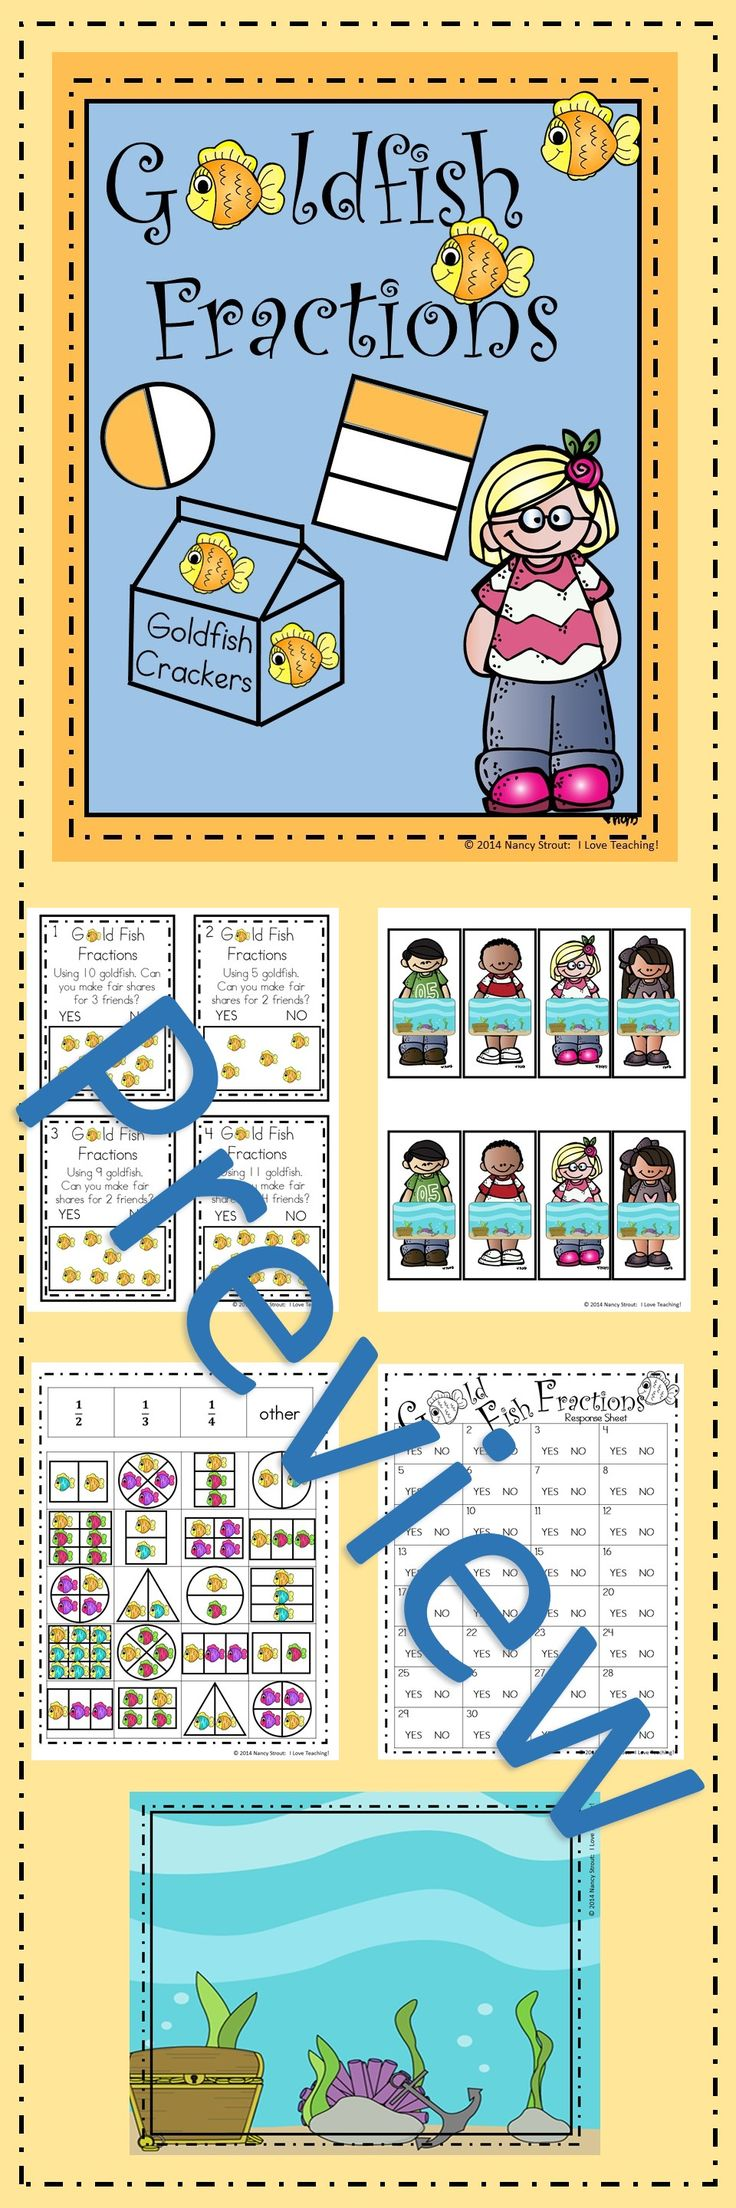 53 best Math images on Pinterest | Educational games, Elementary ...